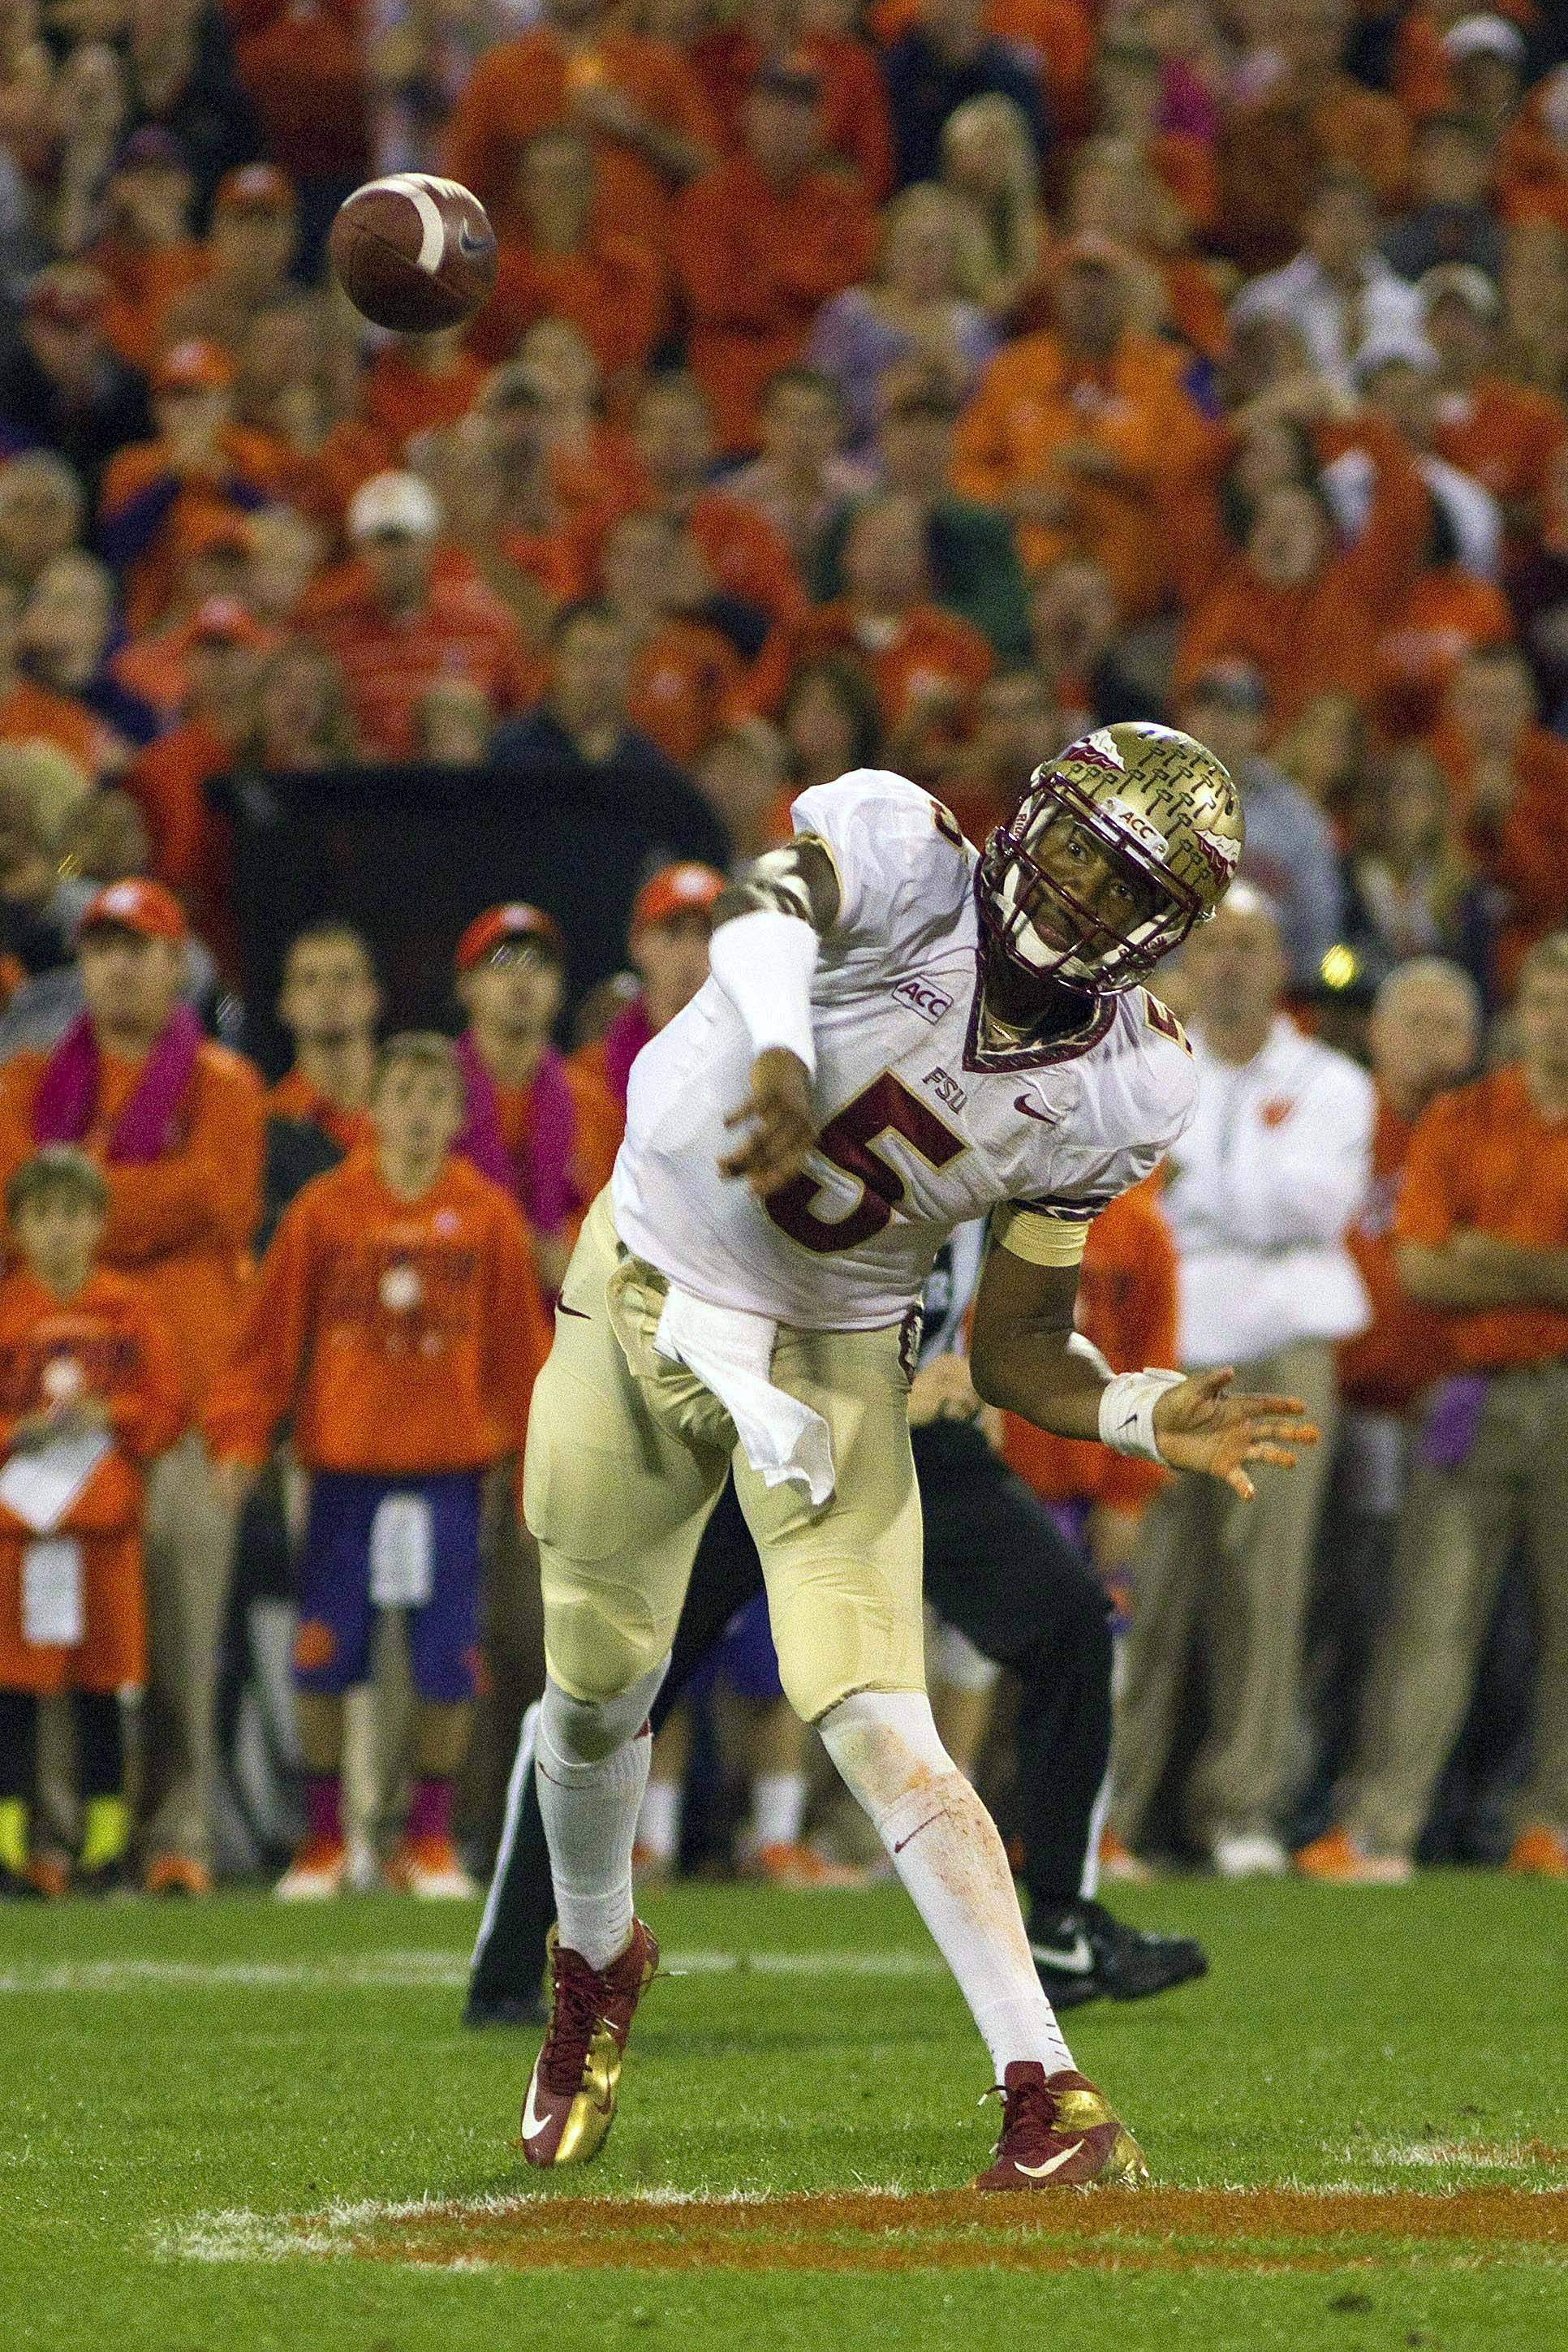 Jameis Winston (5) throws the ball during the first quarter. (Joshua S. Kelly-USA TODAY Sports)